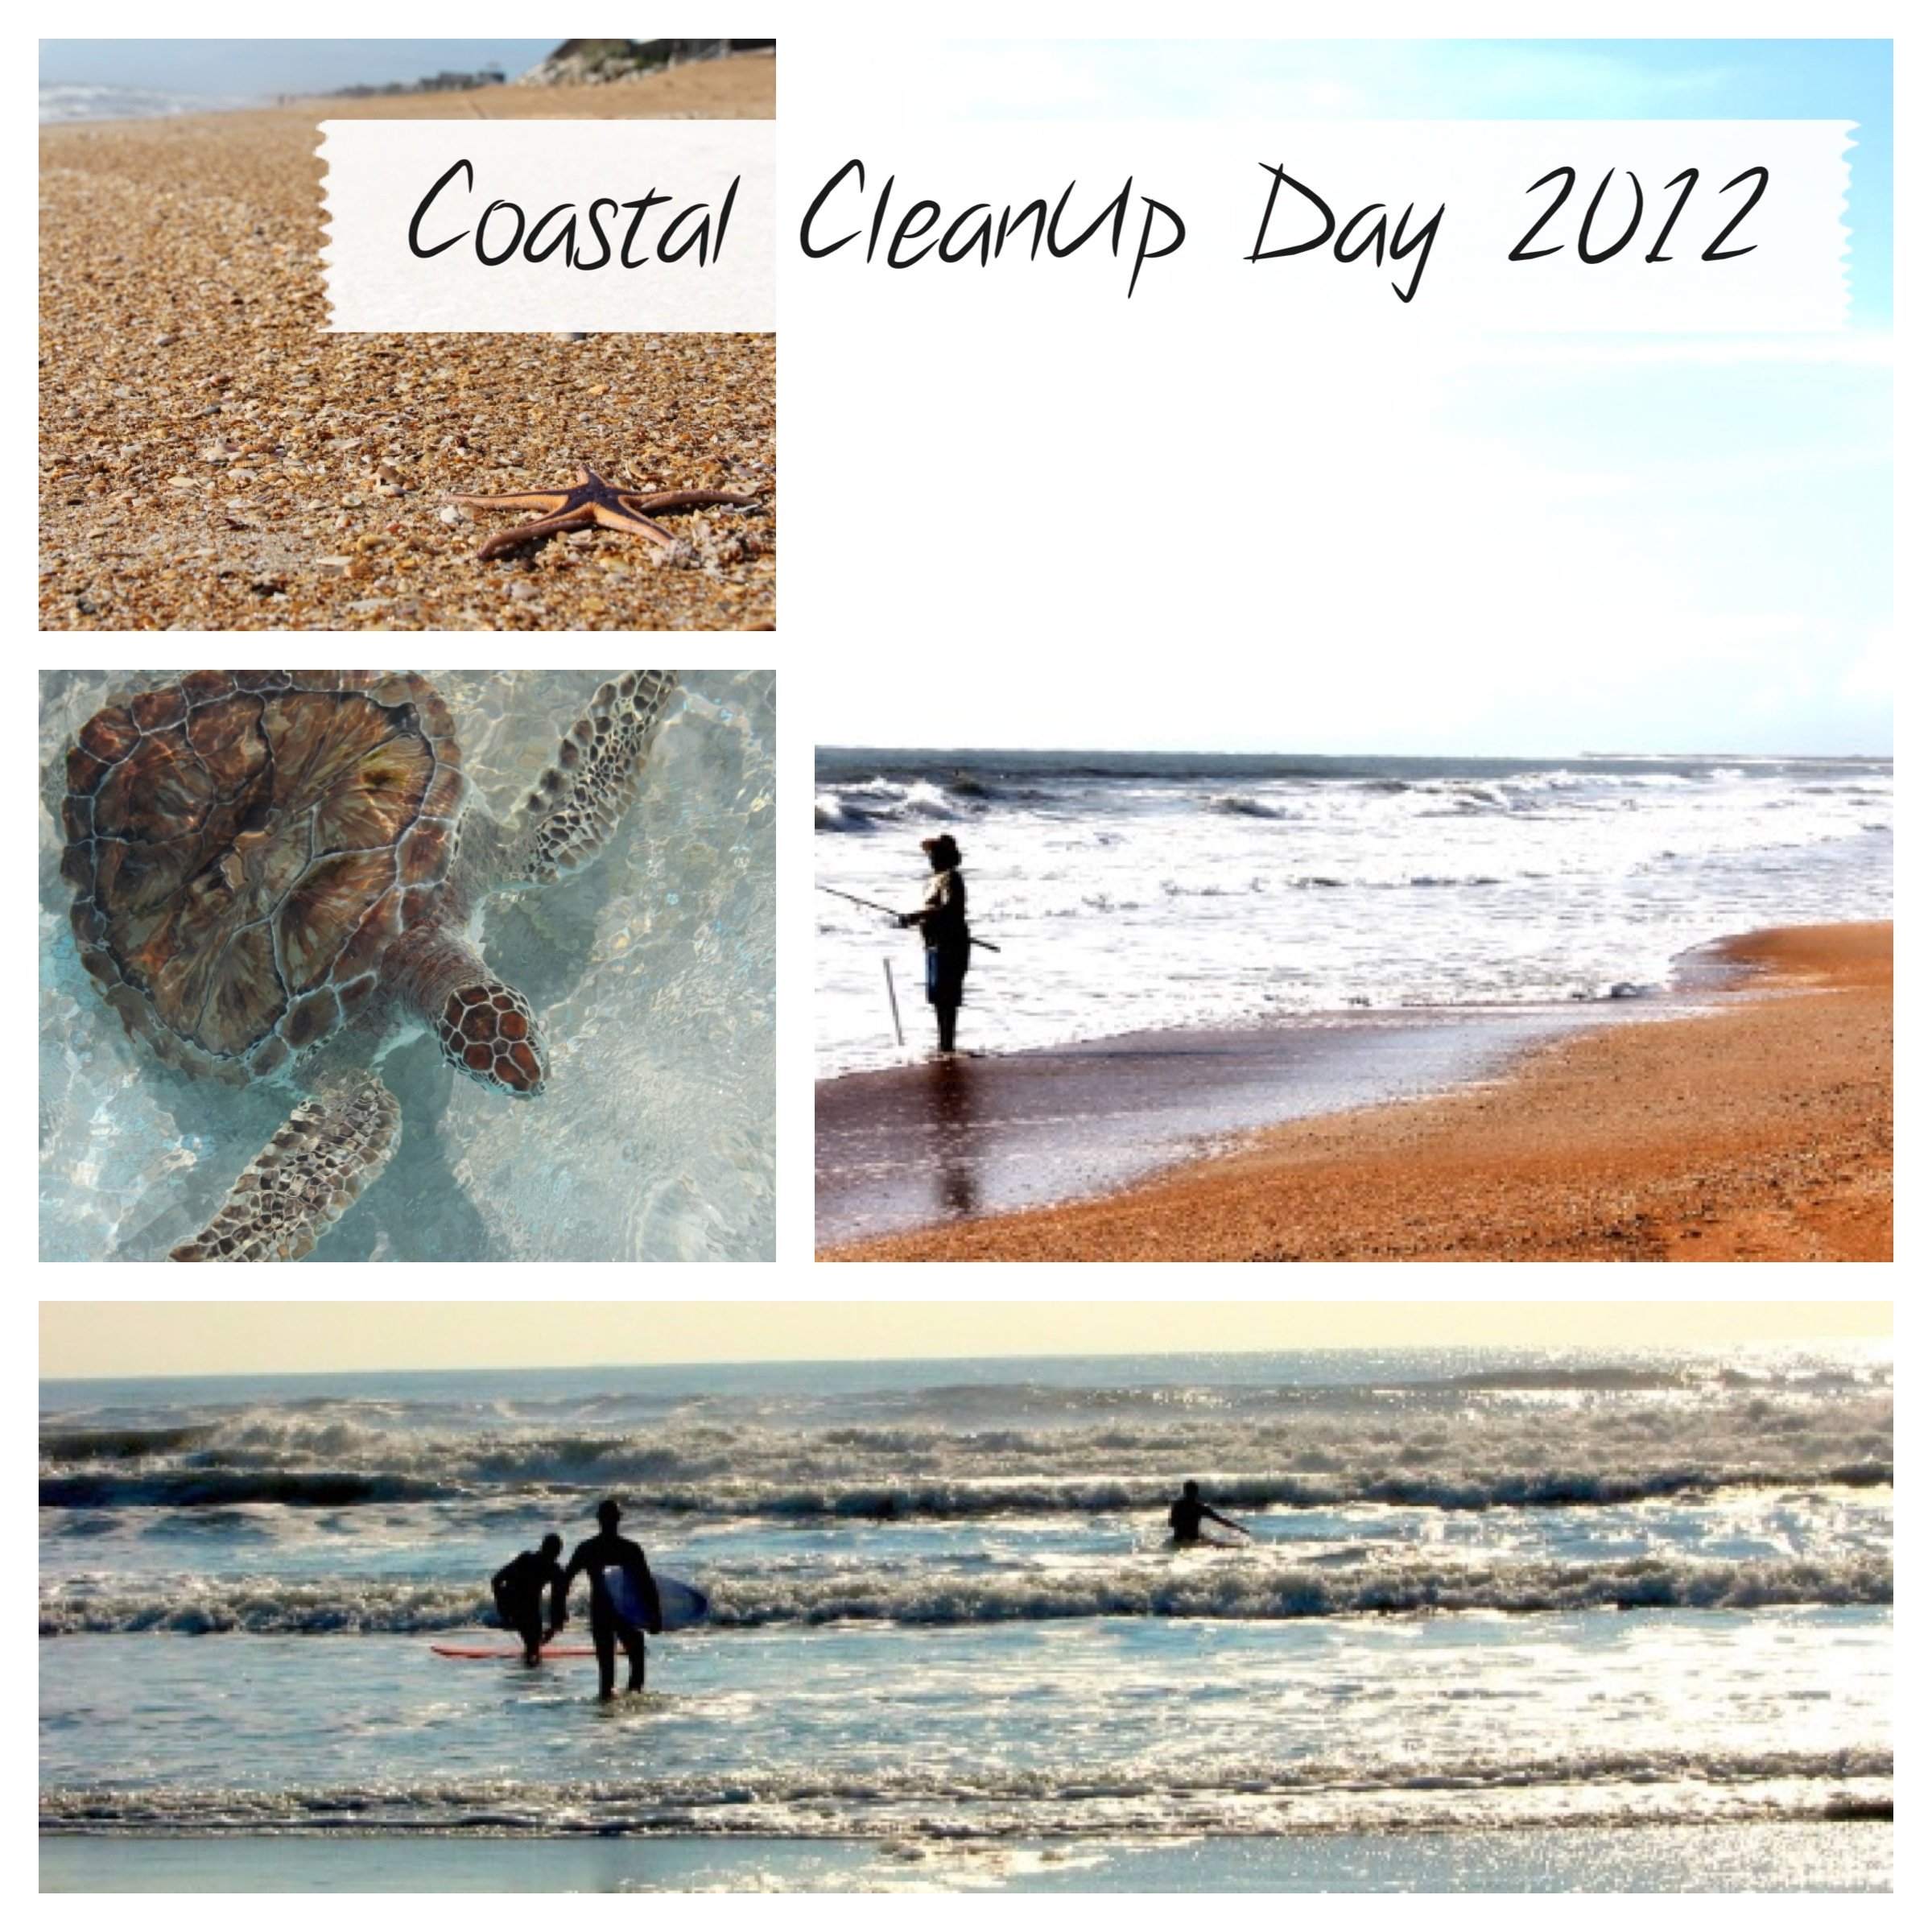 Volunteer for Coastal CleanUp Day